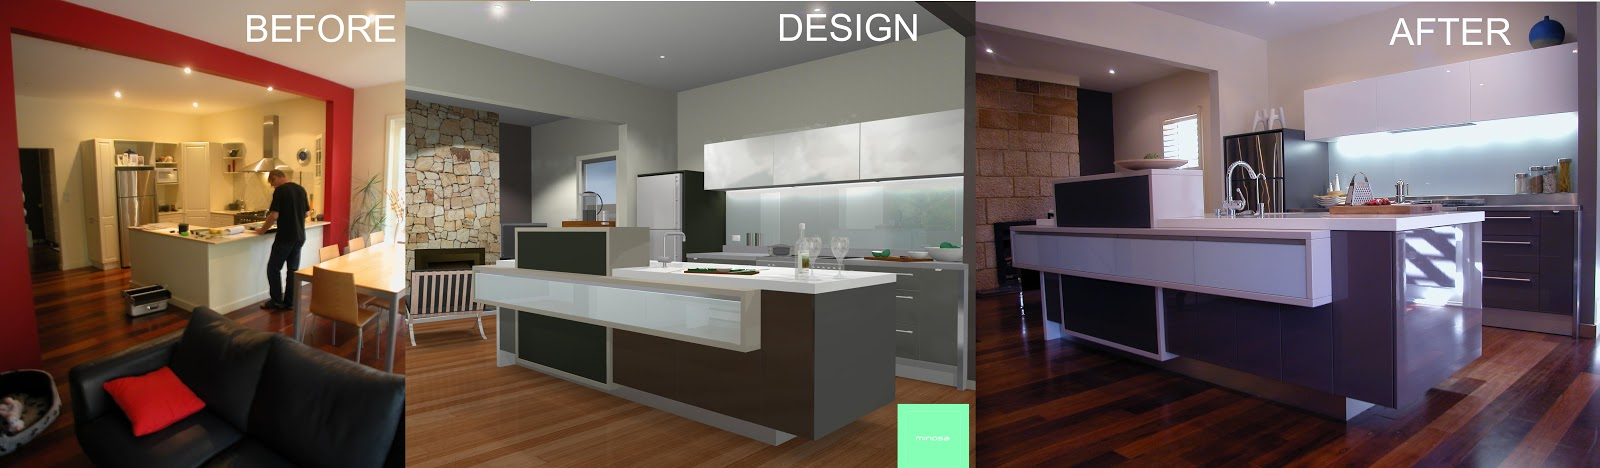 Minosa Balmain Kitchen Working With One Wall